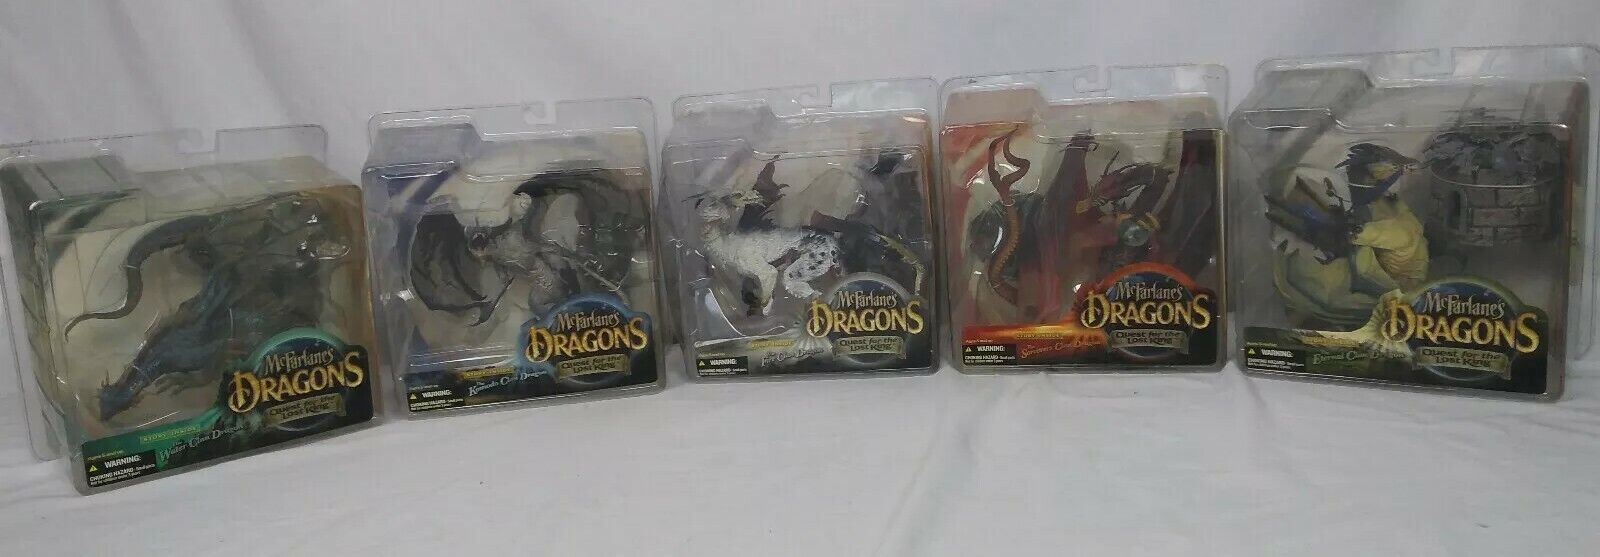 MCFARLANE'S DRAGONS NEW QUEST FOR THE THE FOR LOST KING series one Lot of 5 c83484